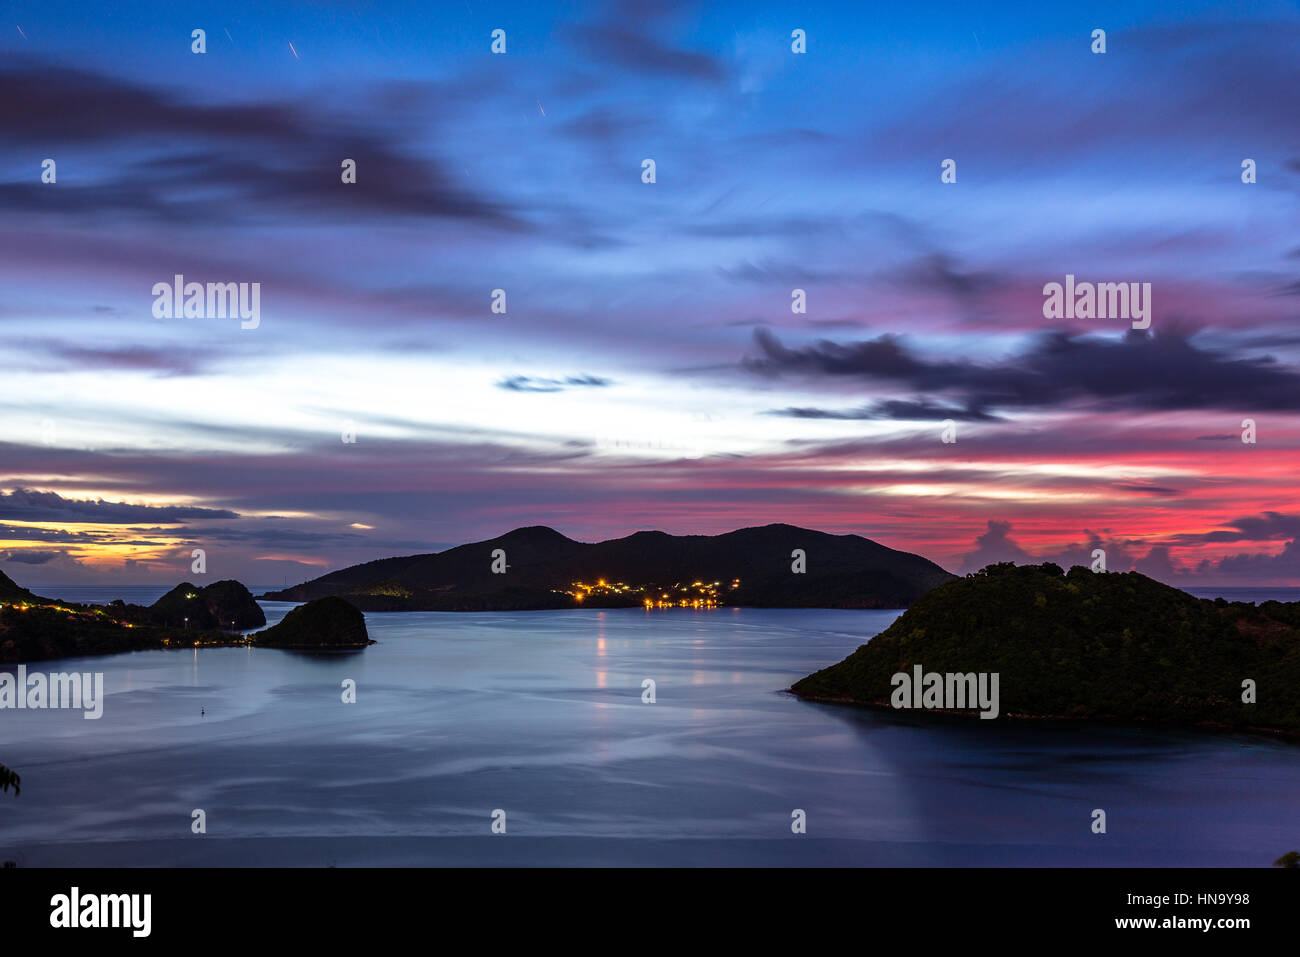 Islands of the Saints after sunset (long exposure) - Stock Image